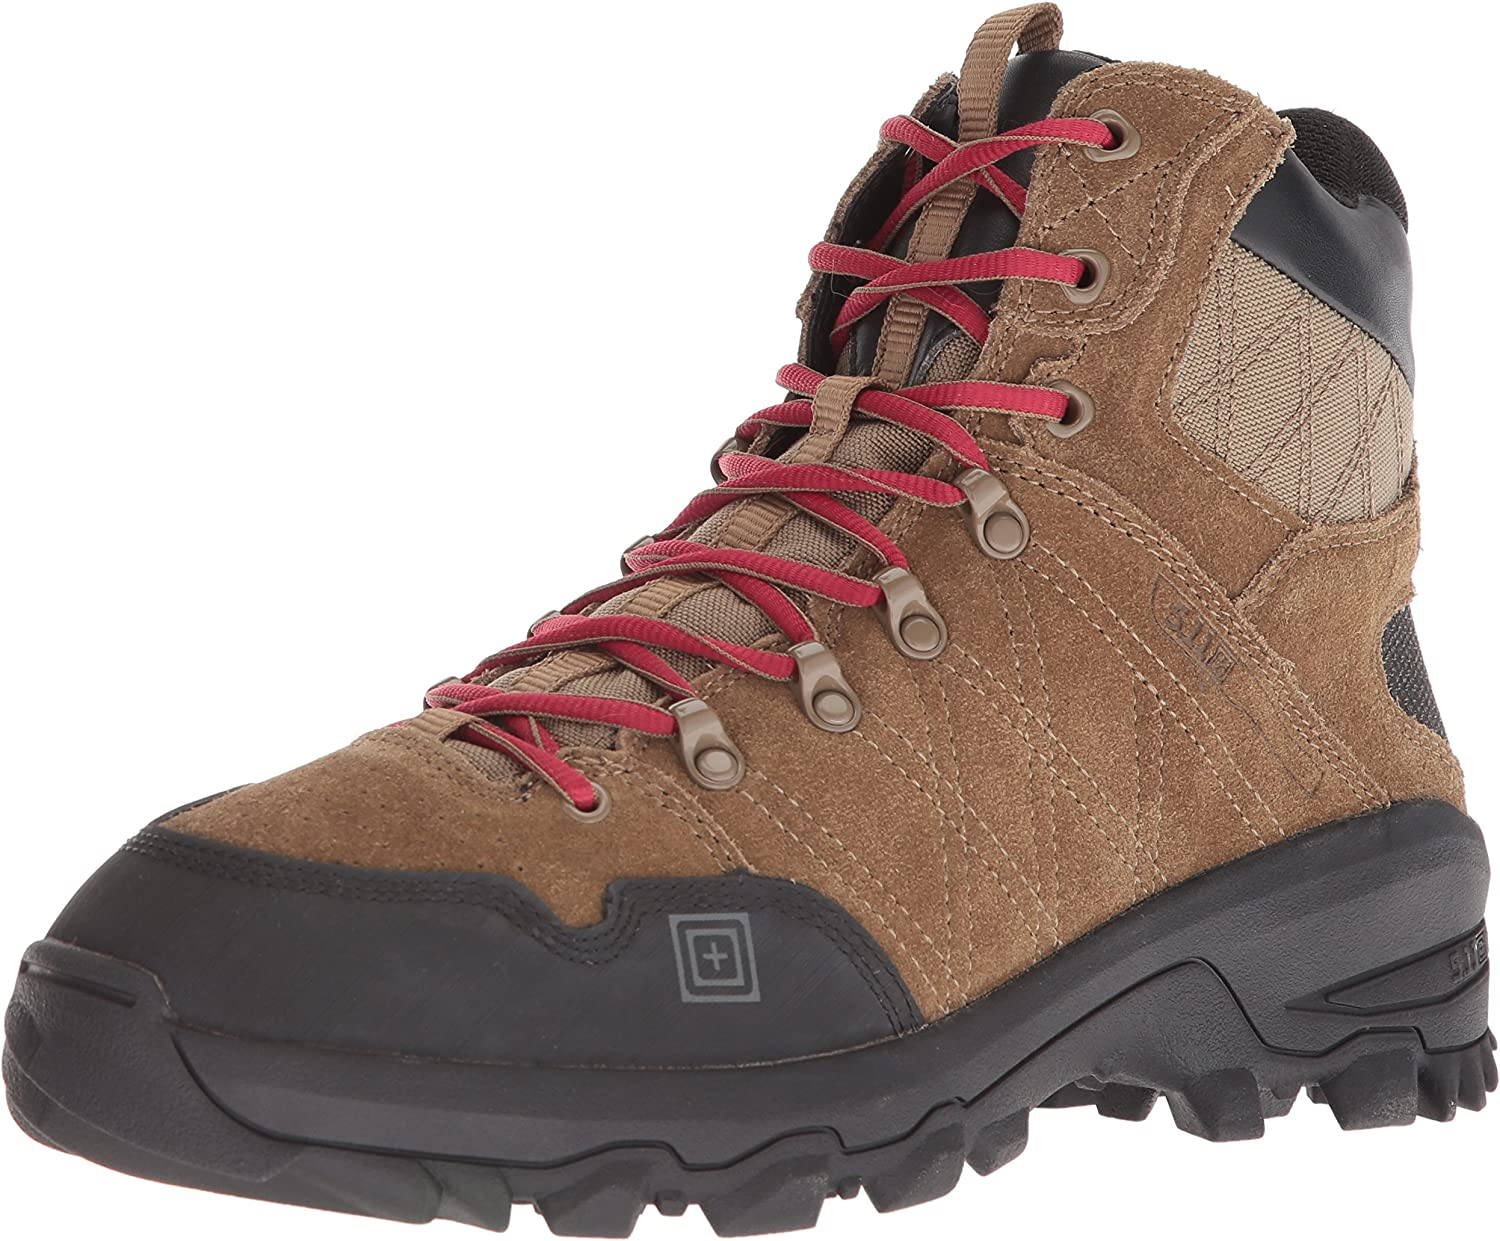 5.11 Cable Hiker Military Military Military and Taktic Boot, DK Coyote, 9.5 Medium US  low-key lyxkonflikt